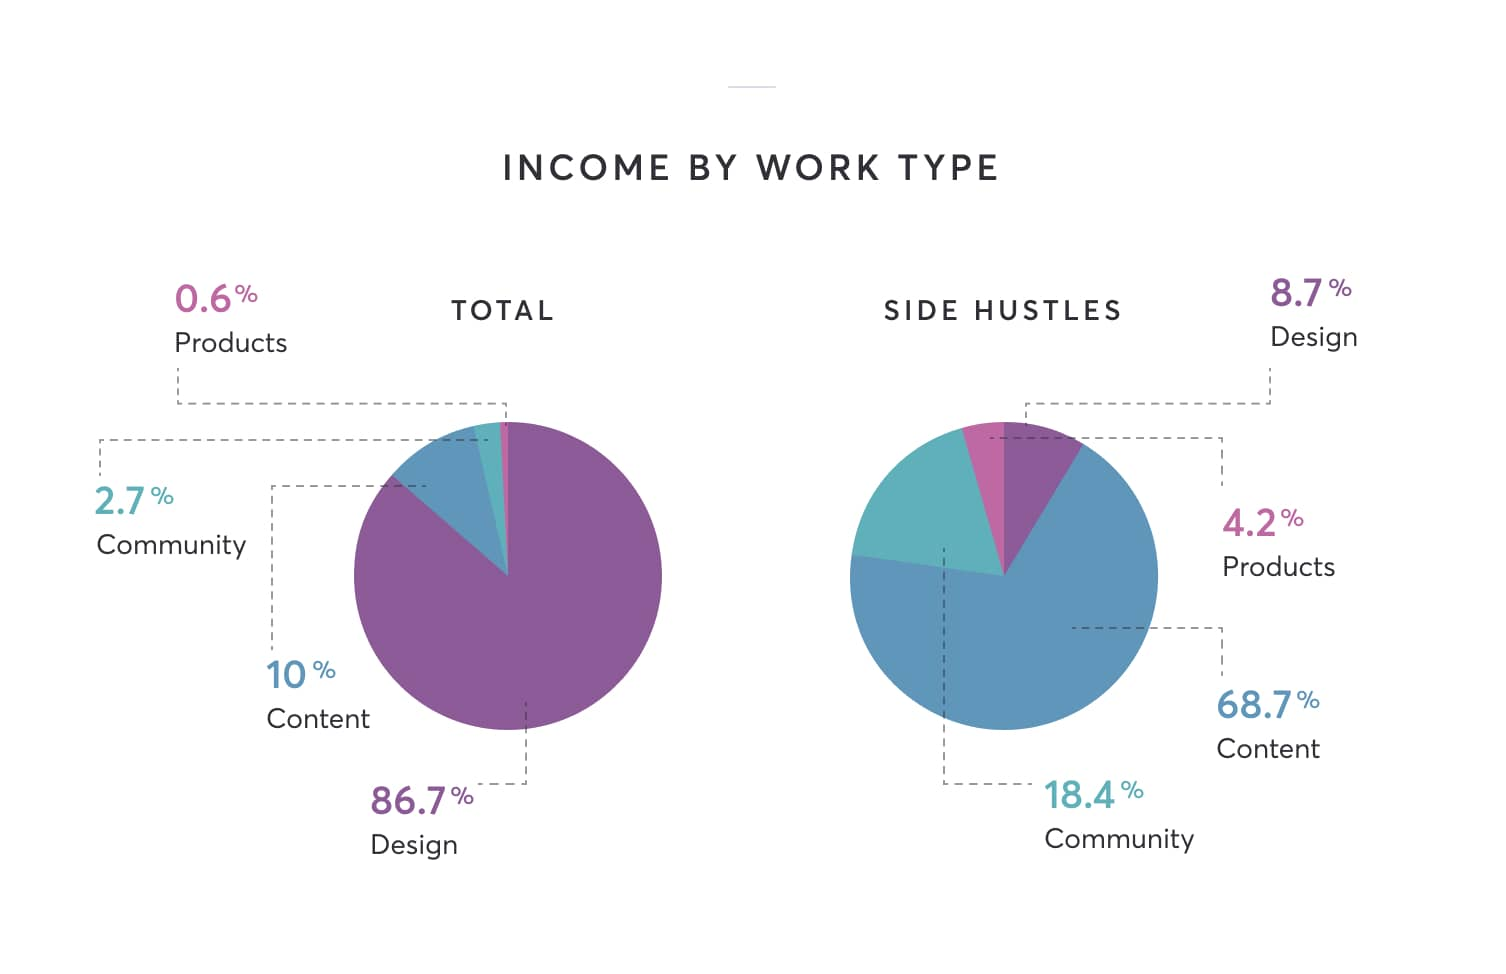 Total income: 86.7% design, 10% content, 2.7% community, 0.6% products. Side hustle: 68.7% content, 18.4% community, 8.7% design, 4.2% products